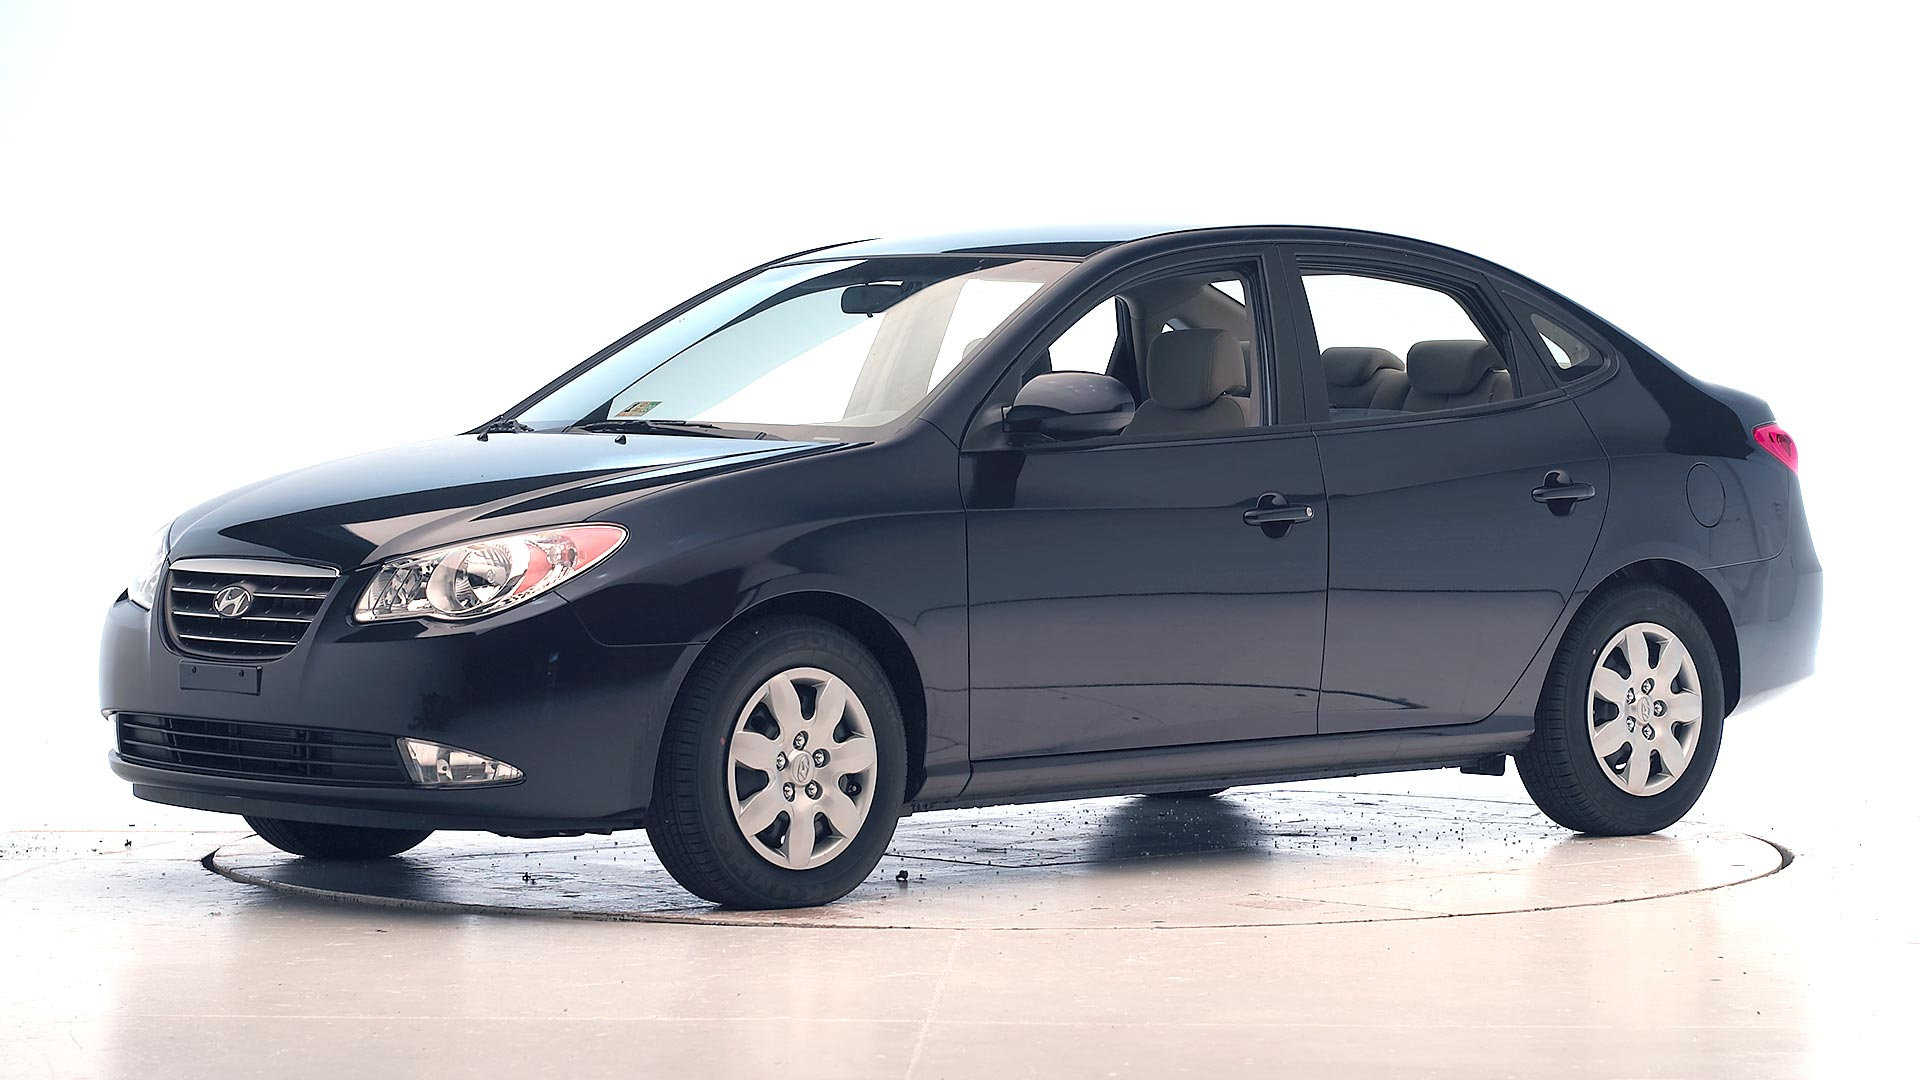 2008 Hyundai Elantra 4-door sedan